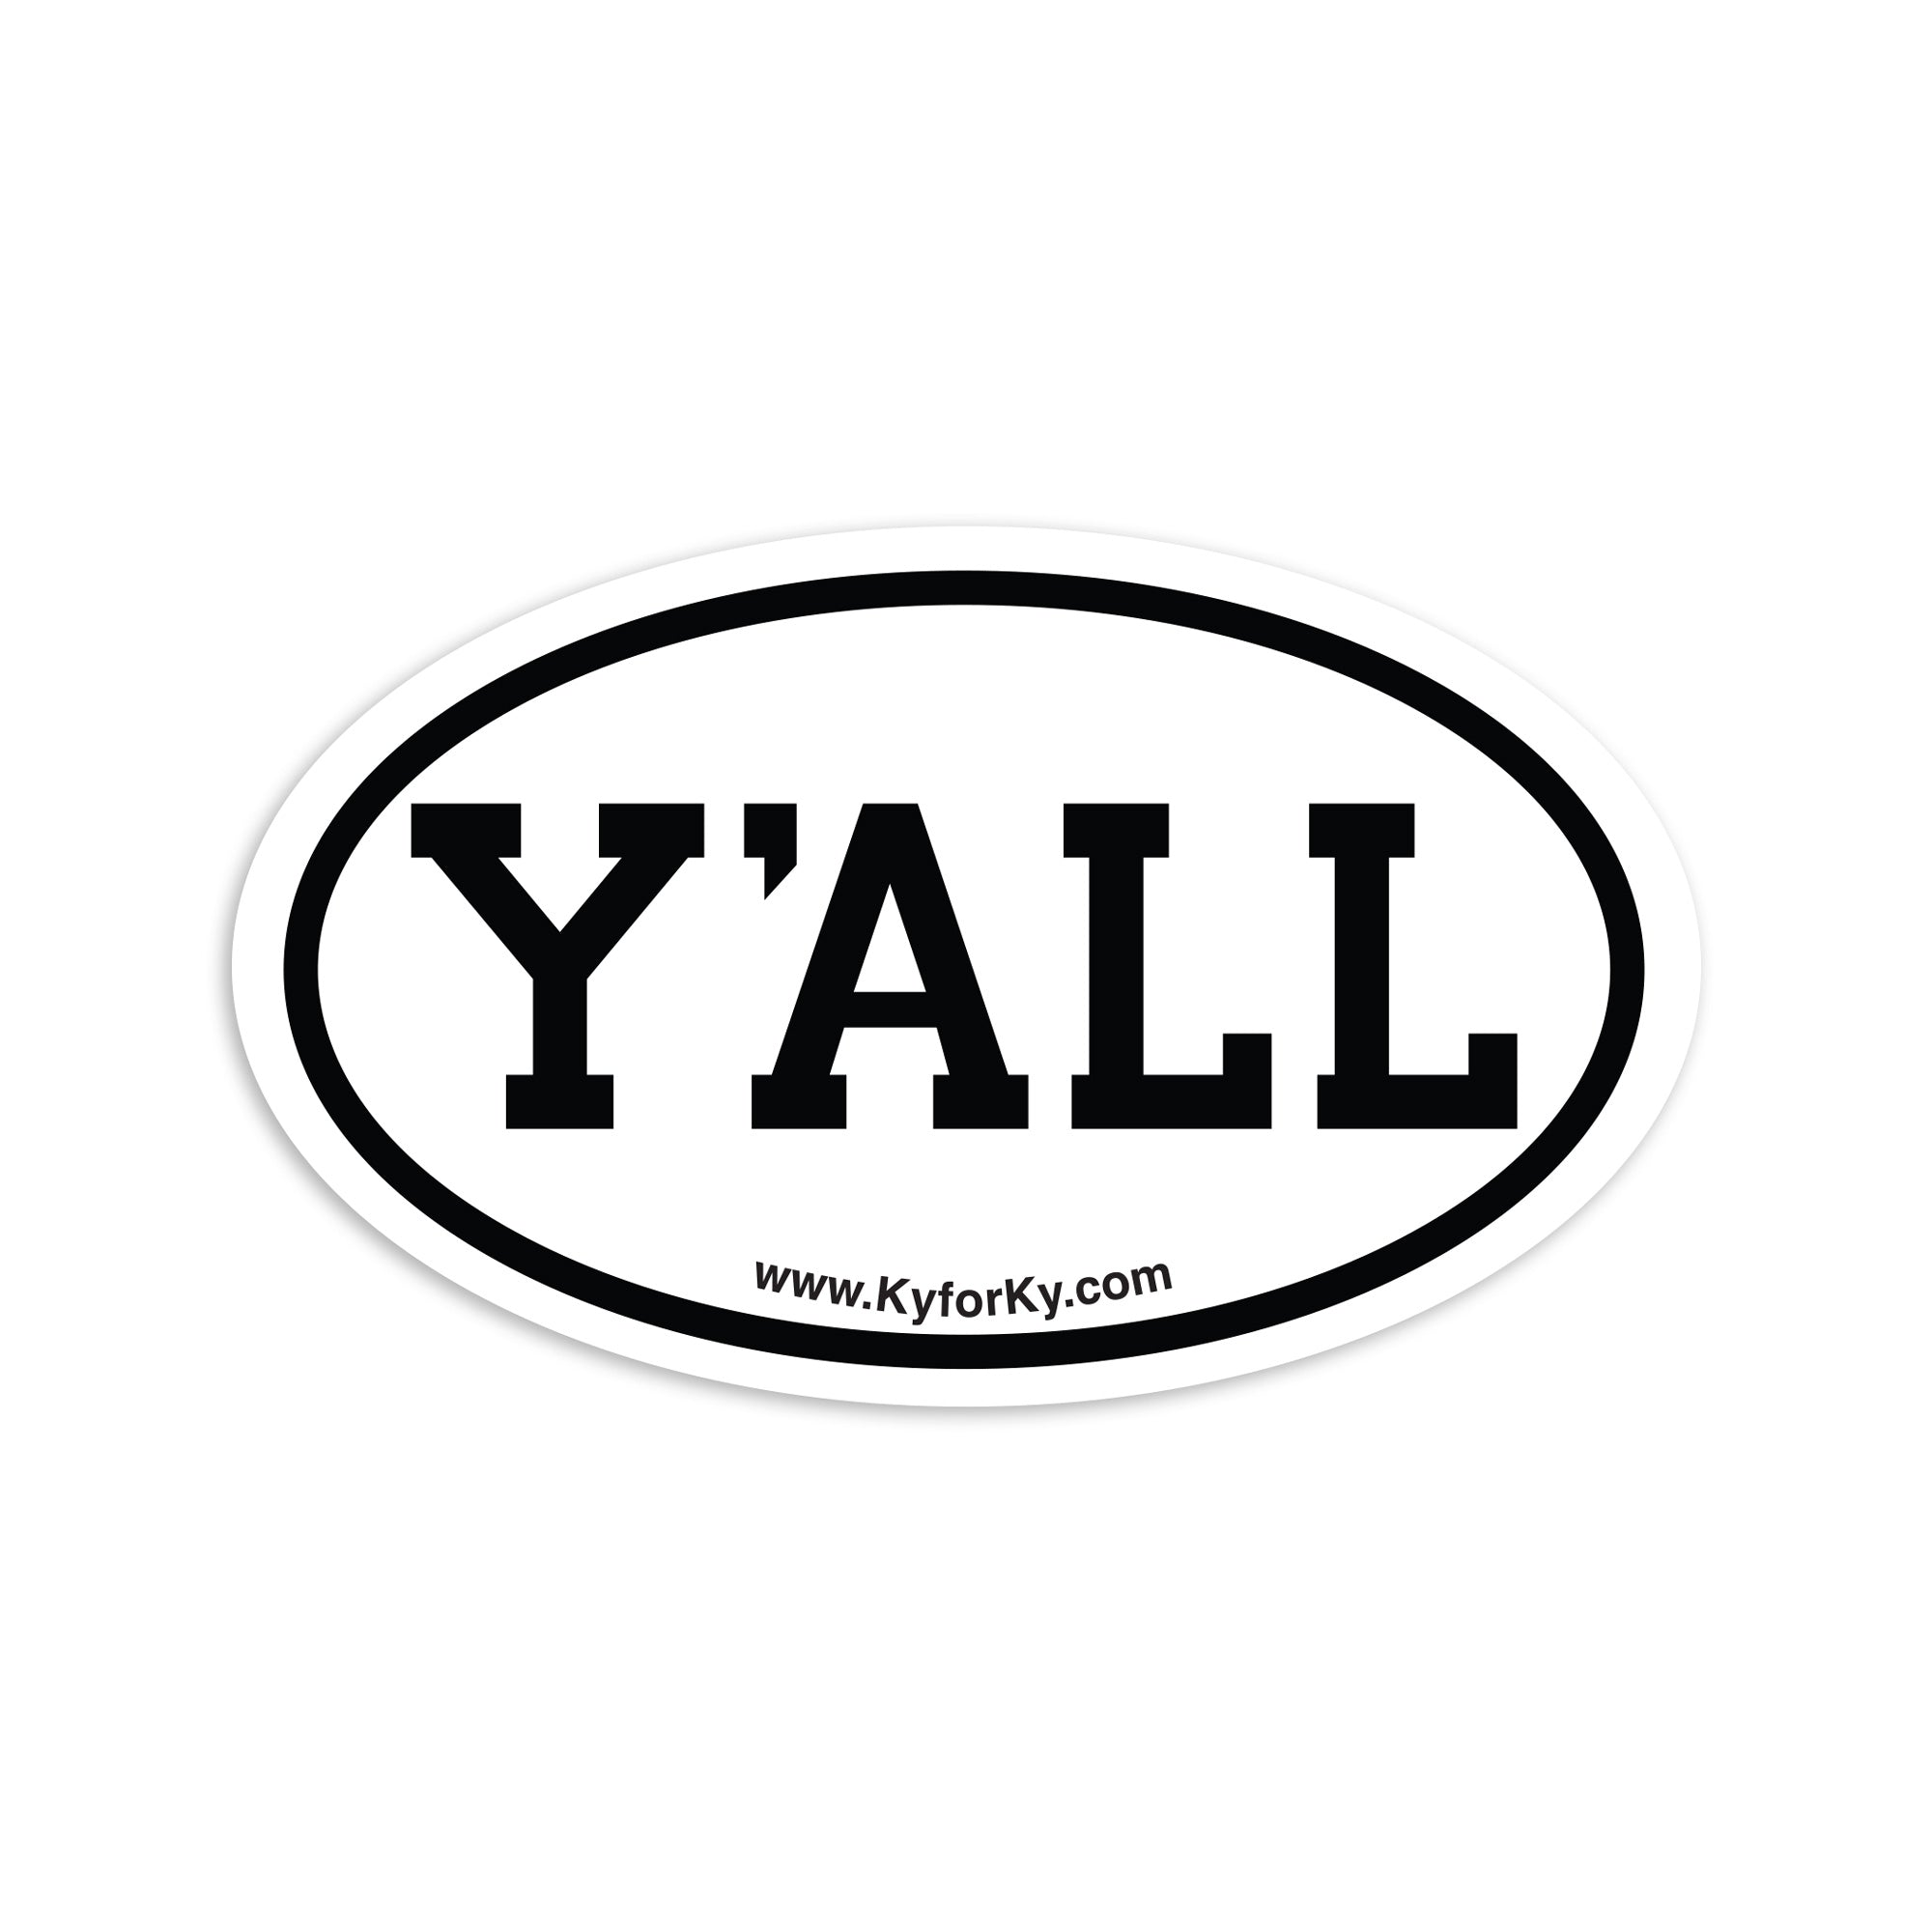 Y'ALL Staycation Sticker-Stickers-KY for KY Store